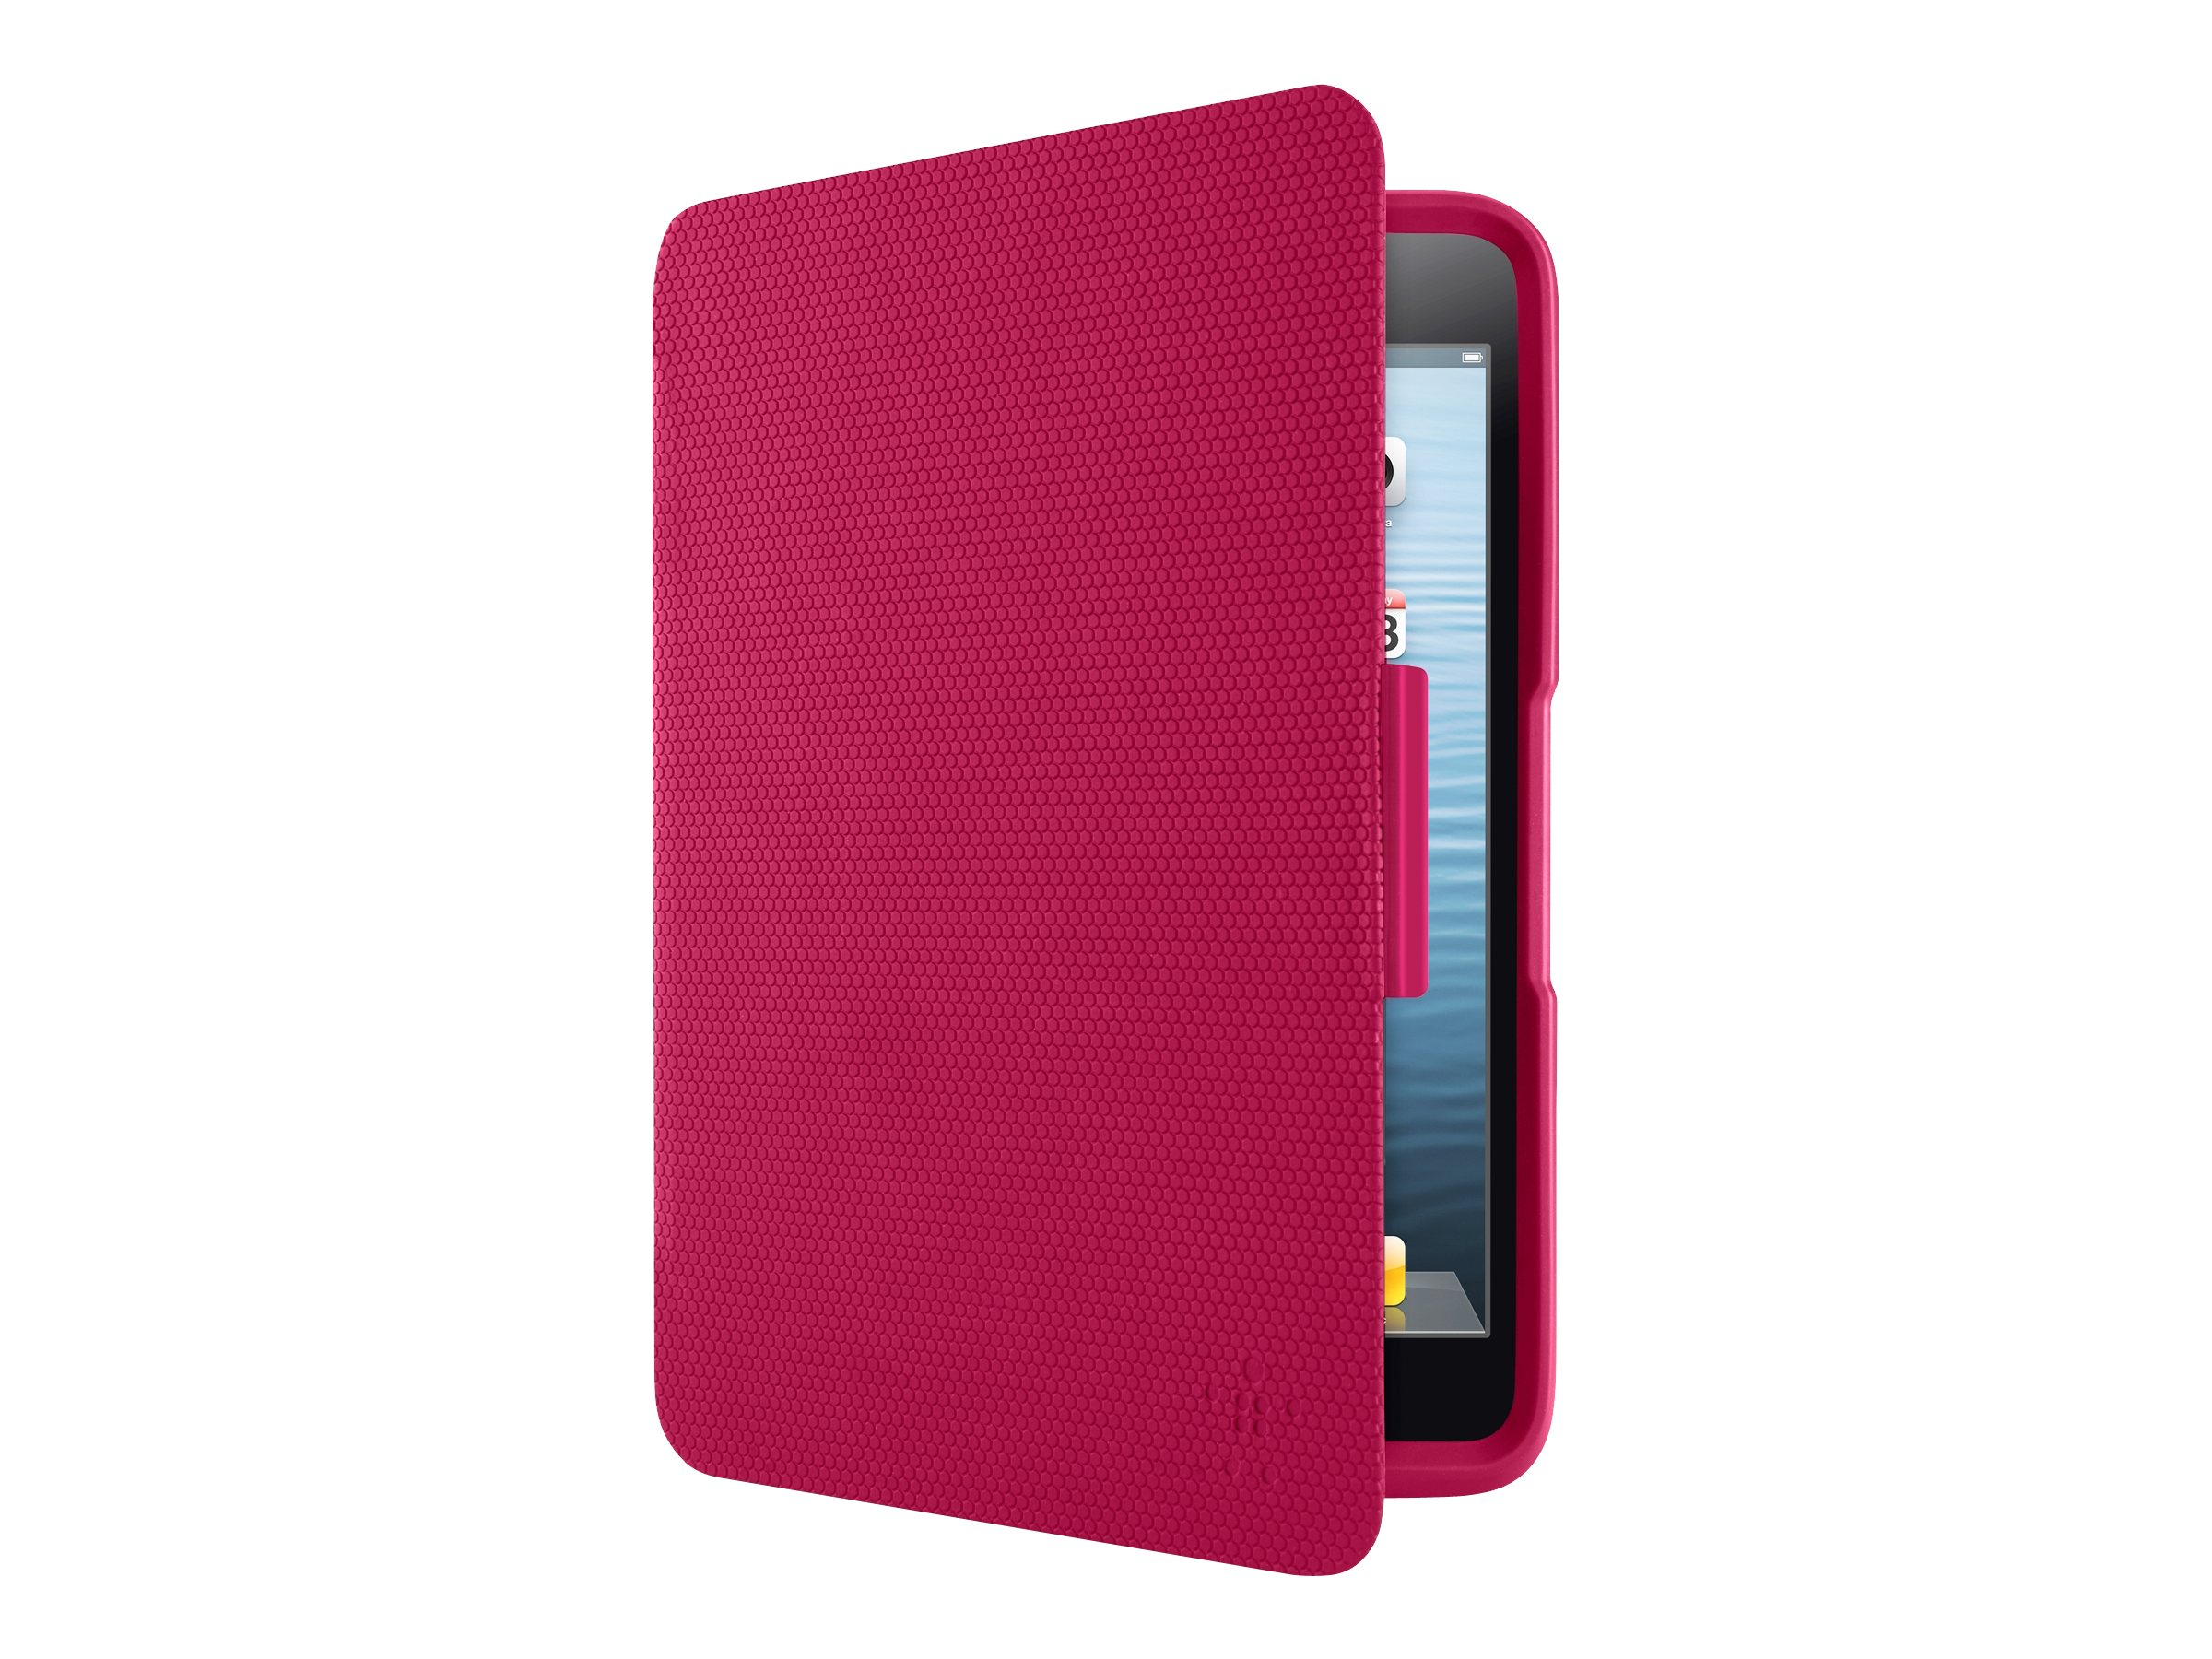 Belkin Apex360 Advanced Protection Case for iPad mini iPad mini w  Retina Display, Fuchsia Fuchsia, F7N023BTC02, 16484249, Carrying Cases - Tablets & eReaders